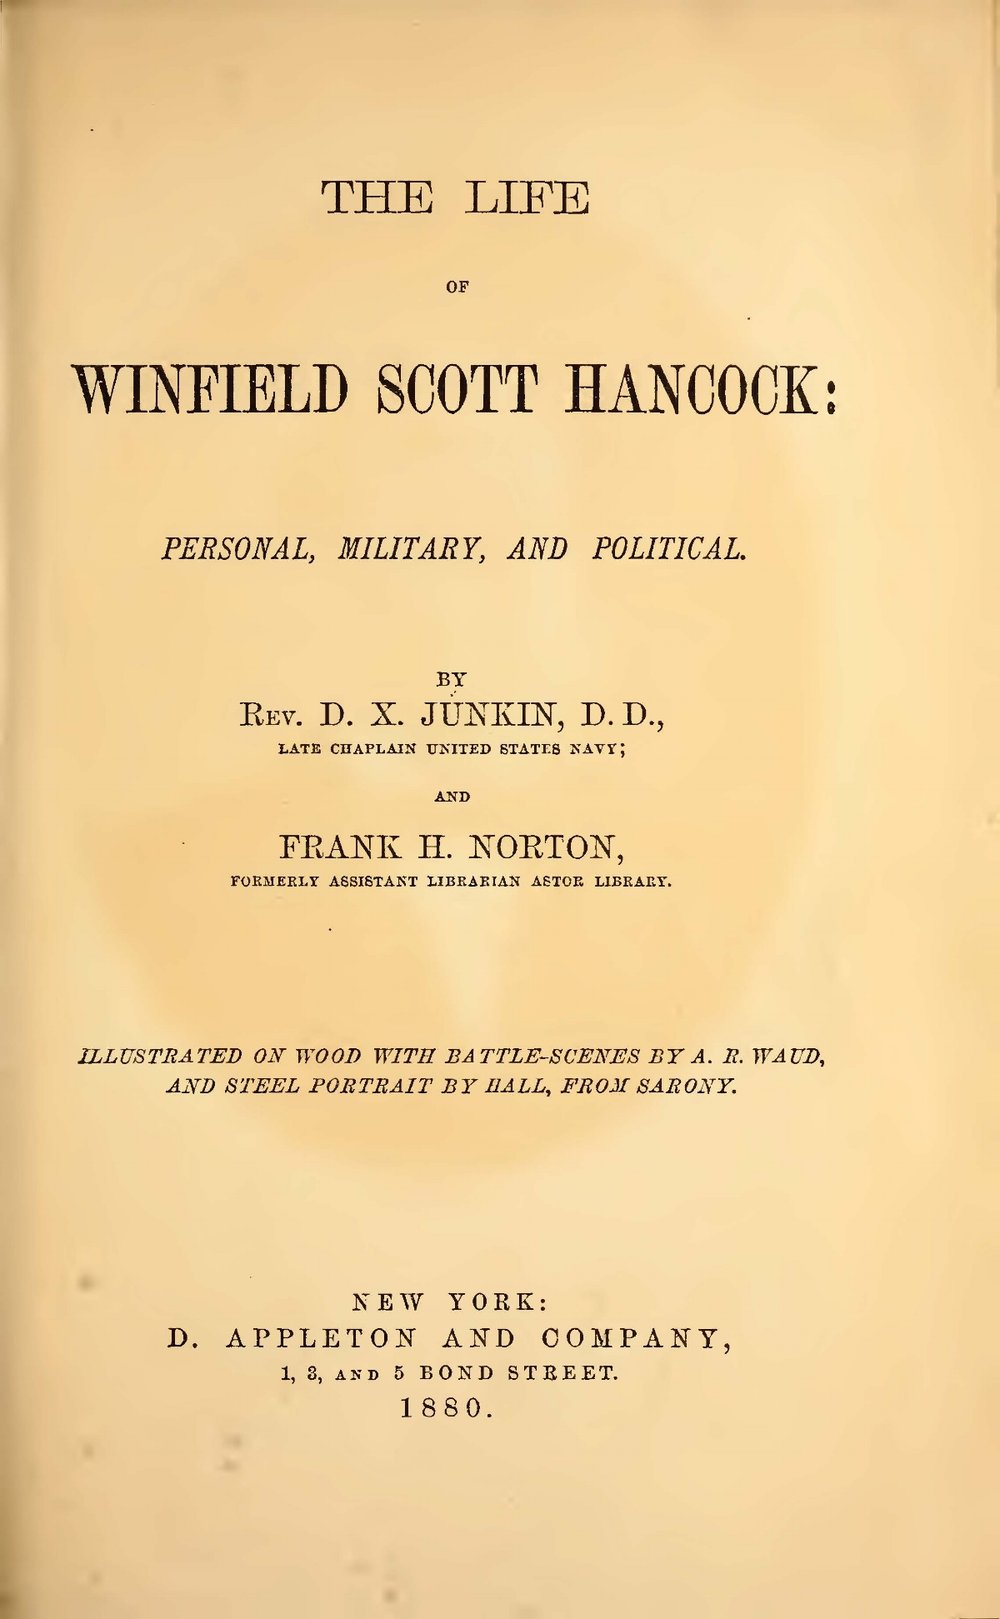 Junkin, David Xavier, The Life of Winfield Scott Hancock Title Page.jpg